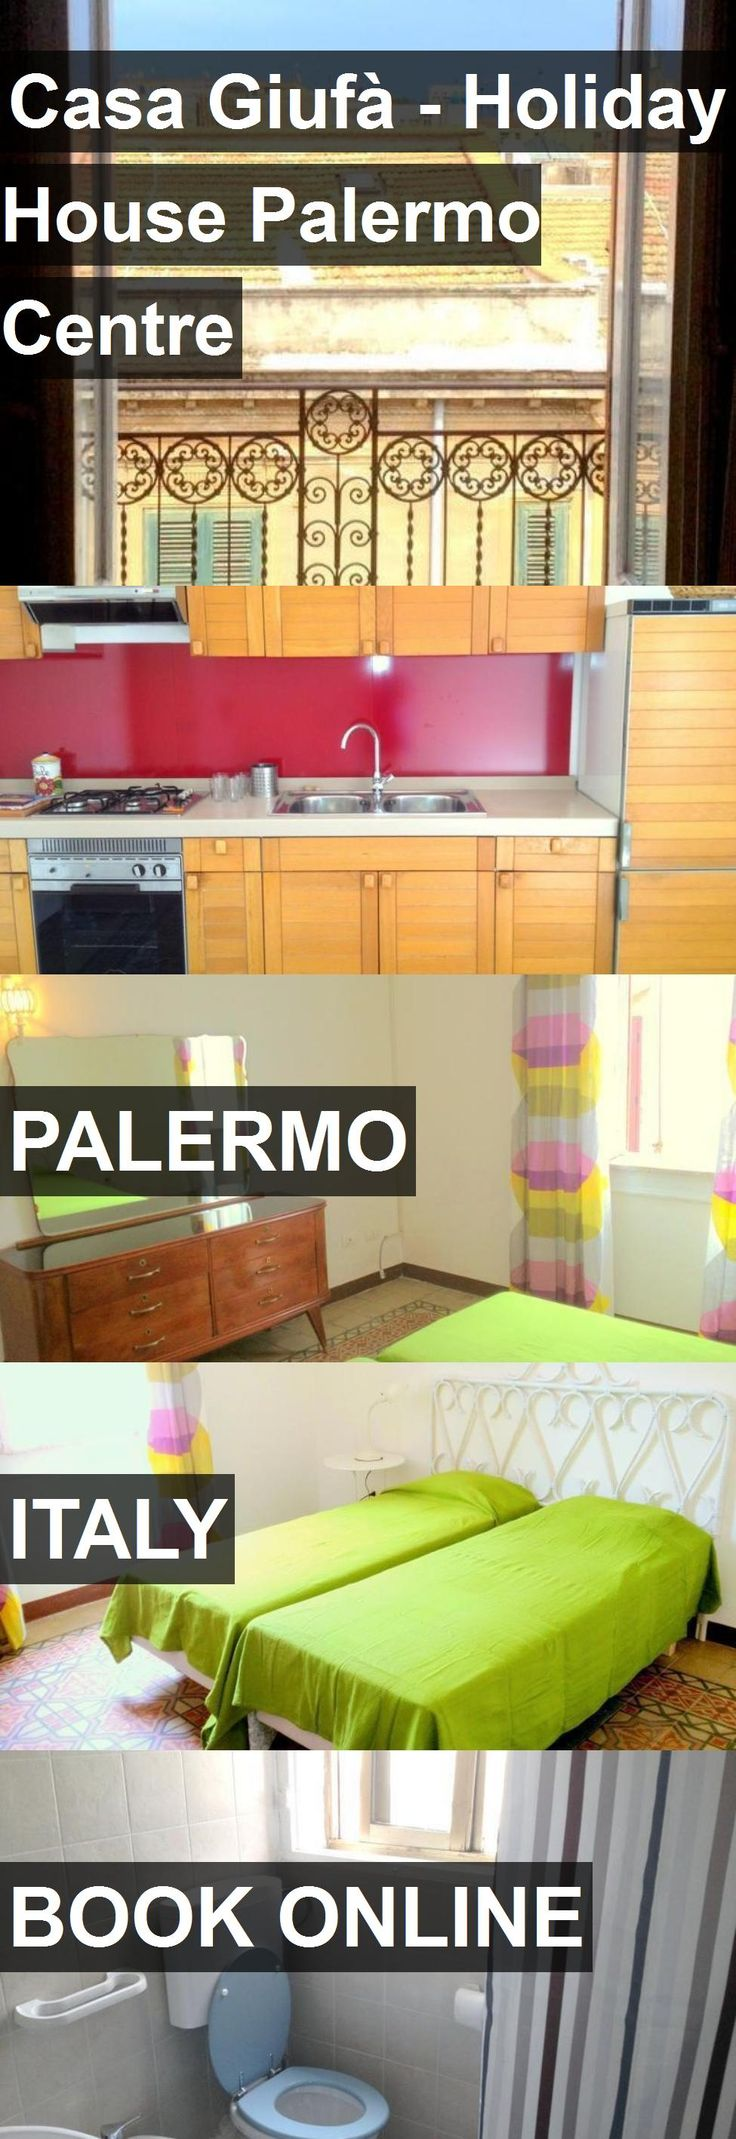 Hotel Casa Giufà - Holiday House Palermo Centre in Palermo, Italy. For more information, photos, reviews and best prices please follow the link. #Italy #Palermo #travel #vacation #hotel